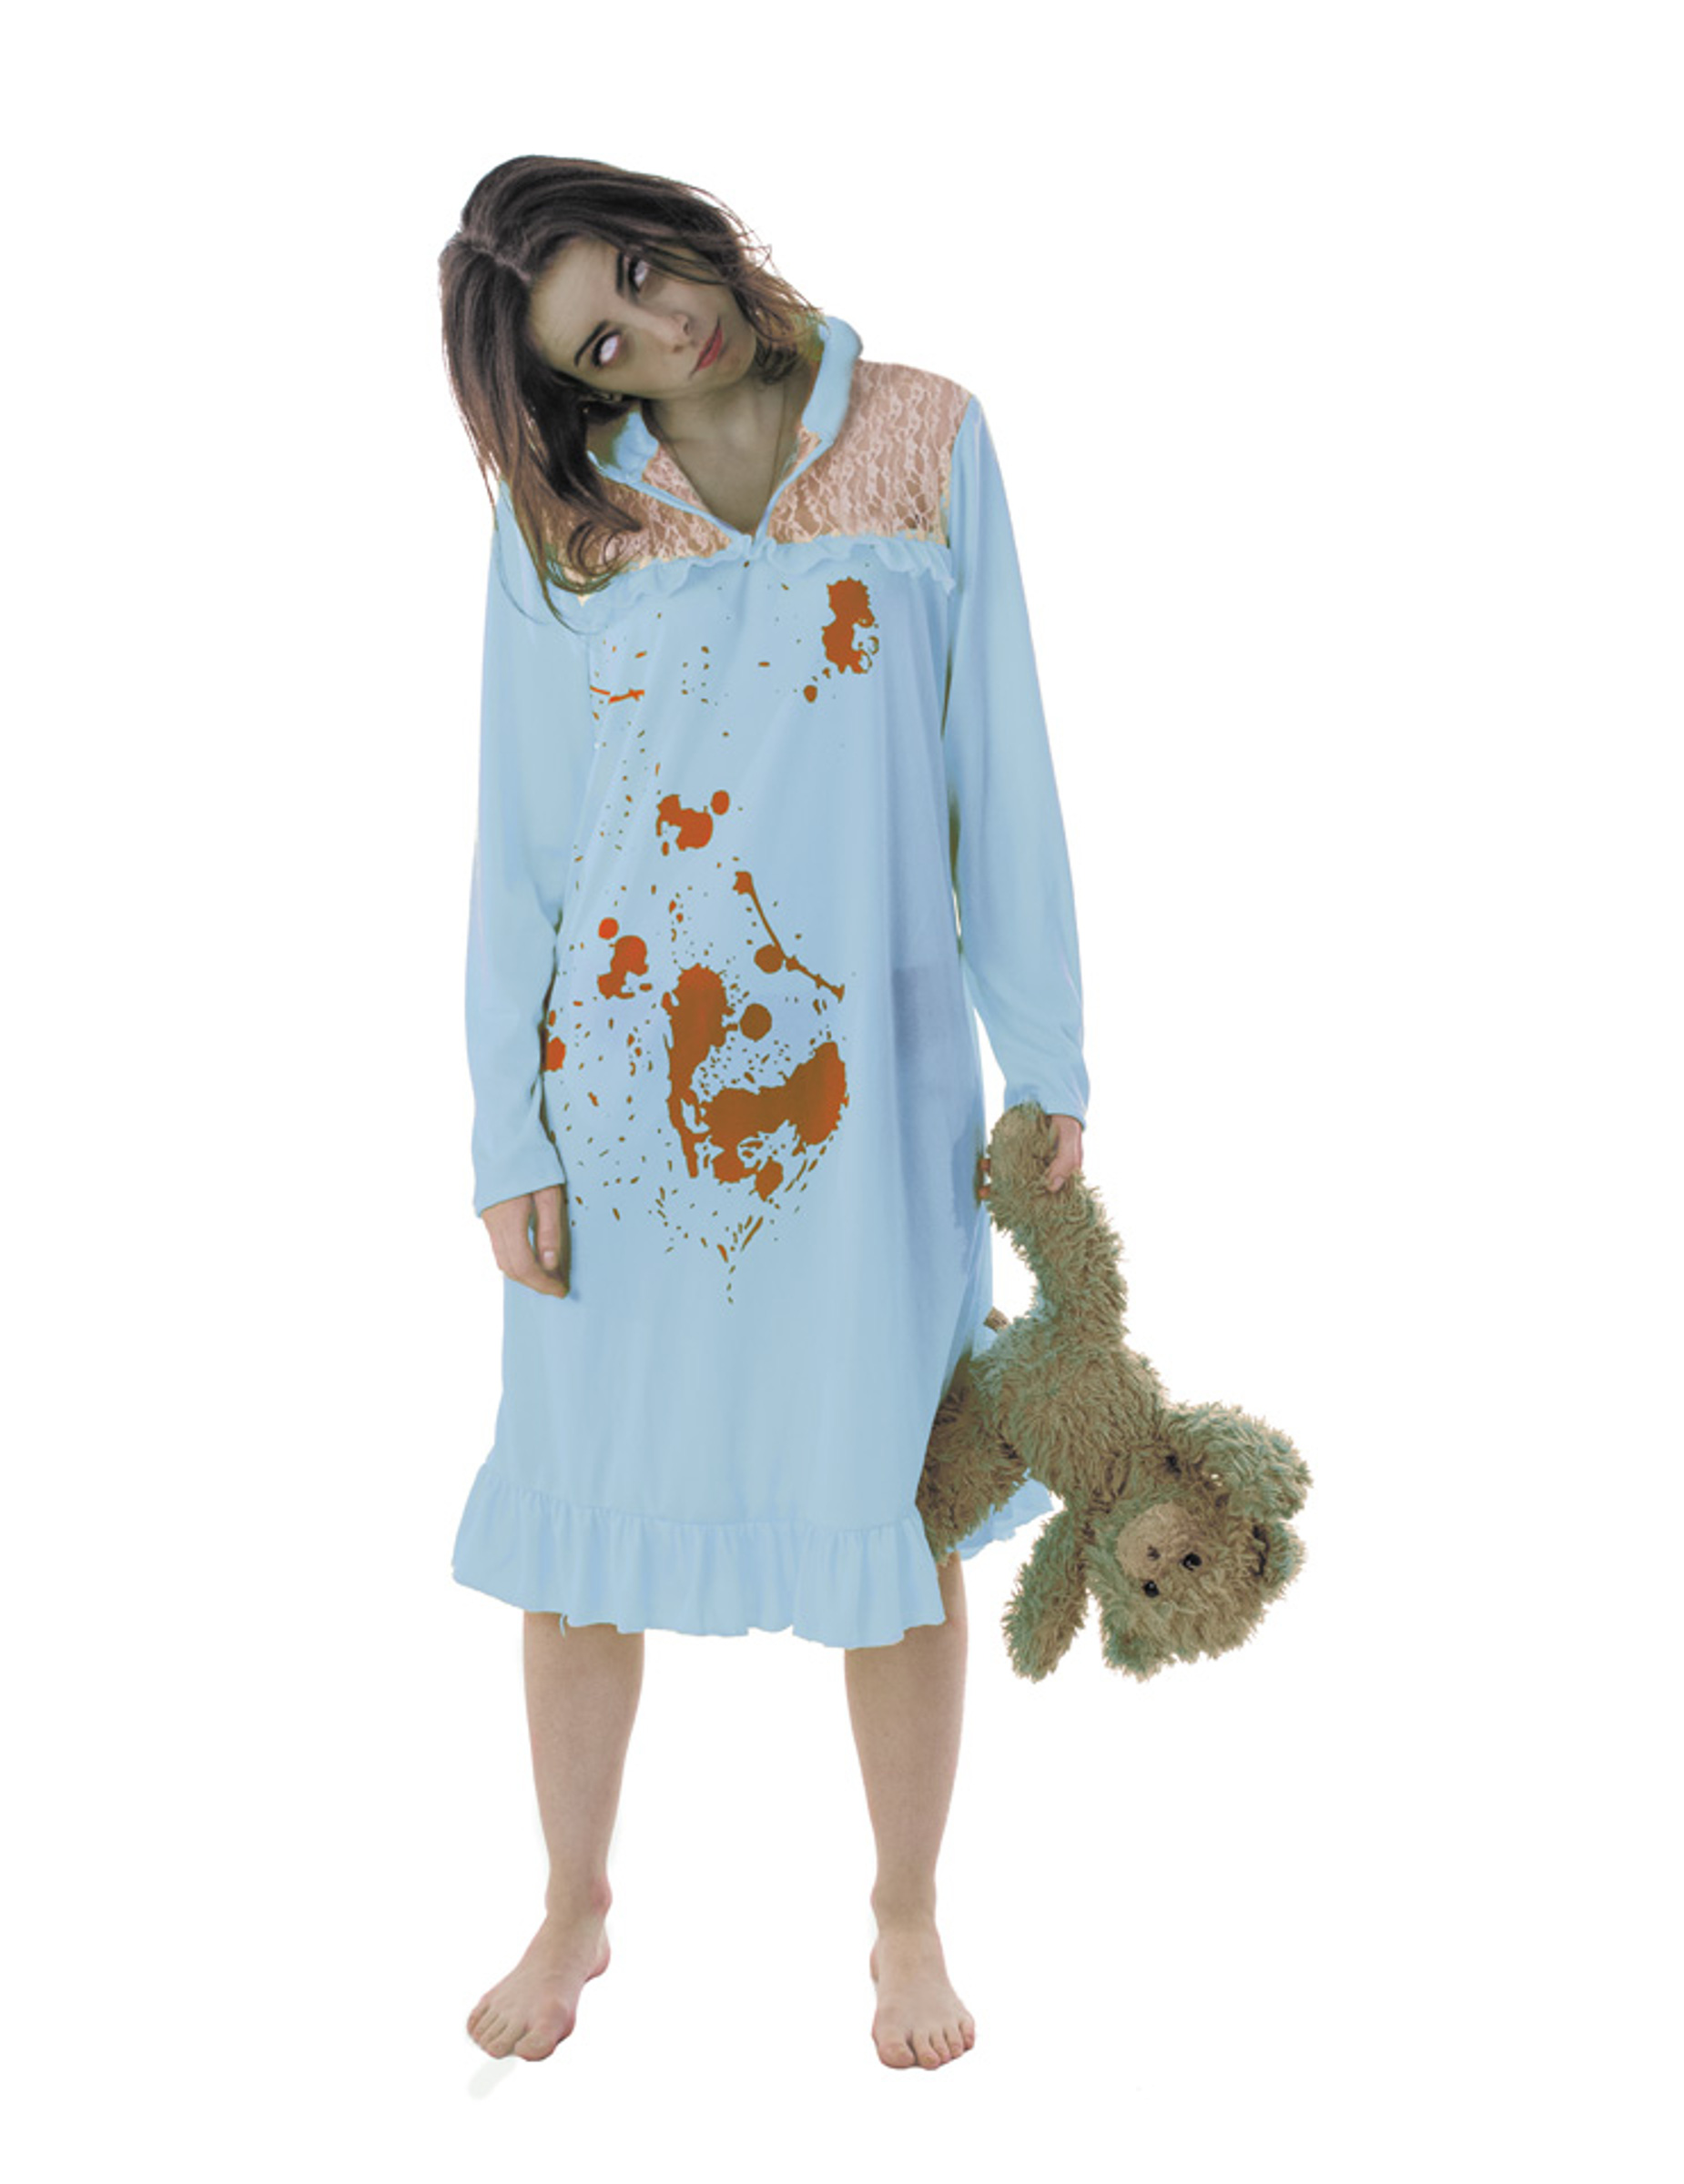 d guisement zombie pyjama femme halloween deguise toi achat de d guisements adultes. Black Bedroom Furniture Sets. Home Design Ideas